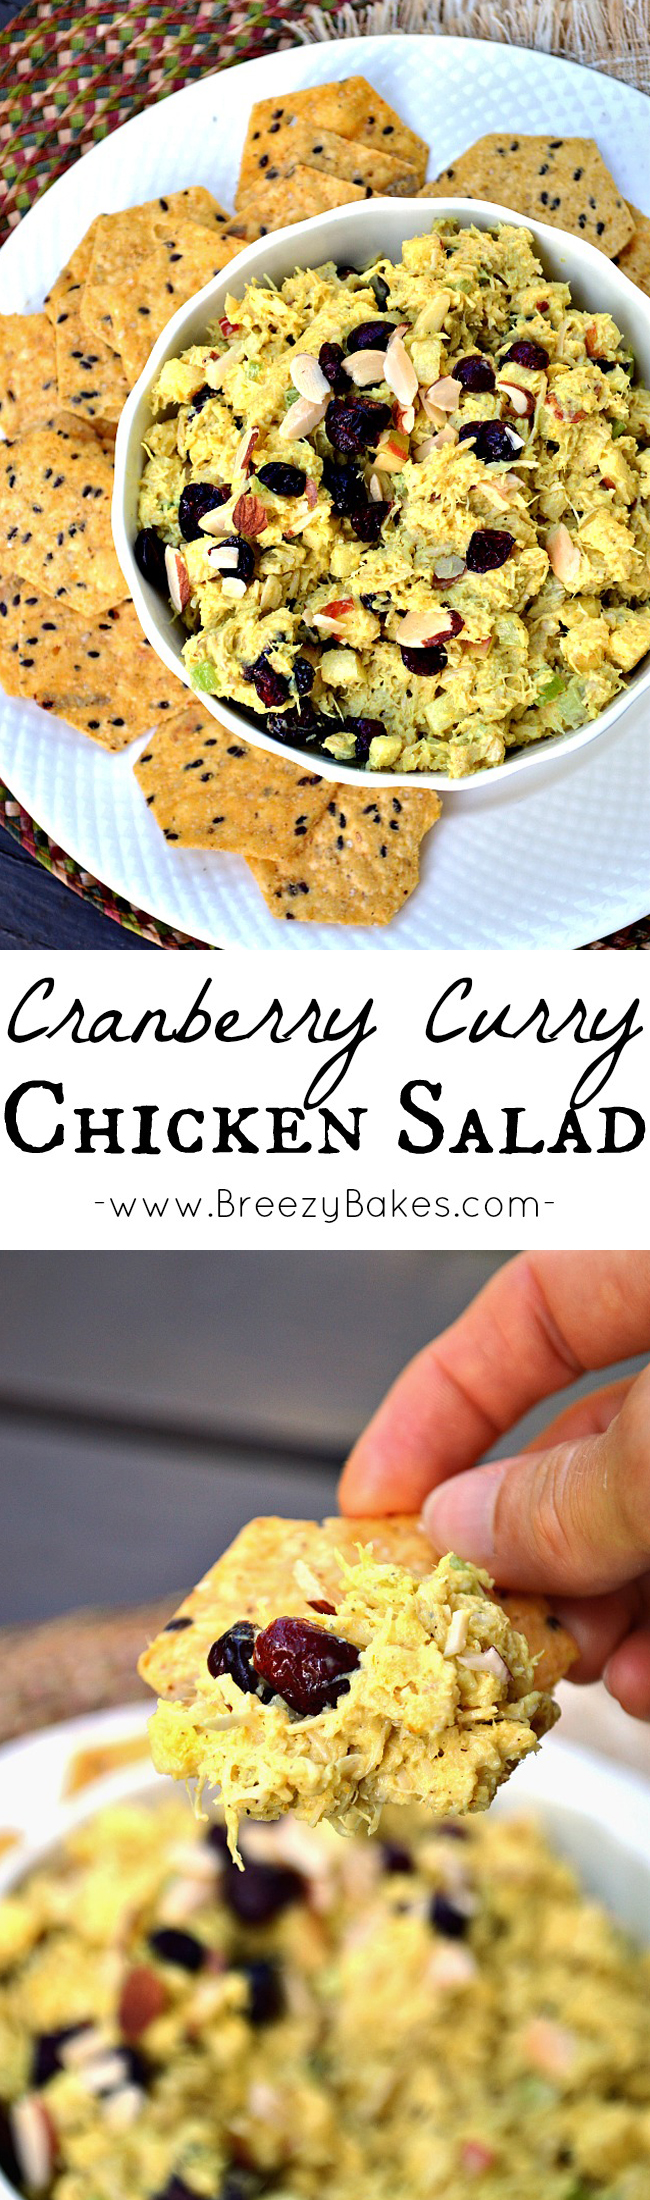 Use up some of your food storage and spices with this flavorful and aromatic Cranberry Curry Chicken Salad. It's perfect for dipping crackers, topping a salad, or filling a sandwich.